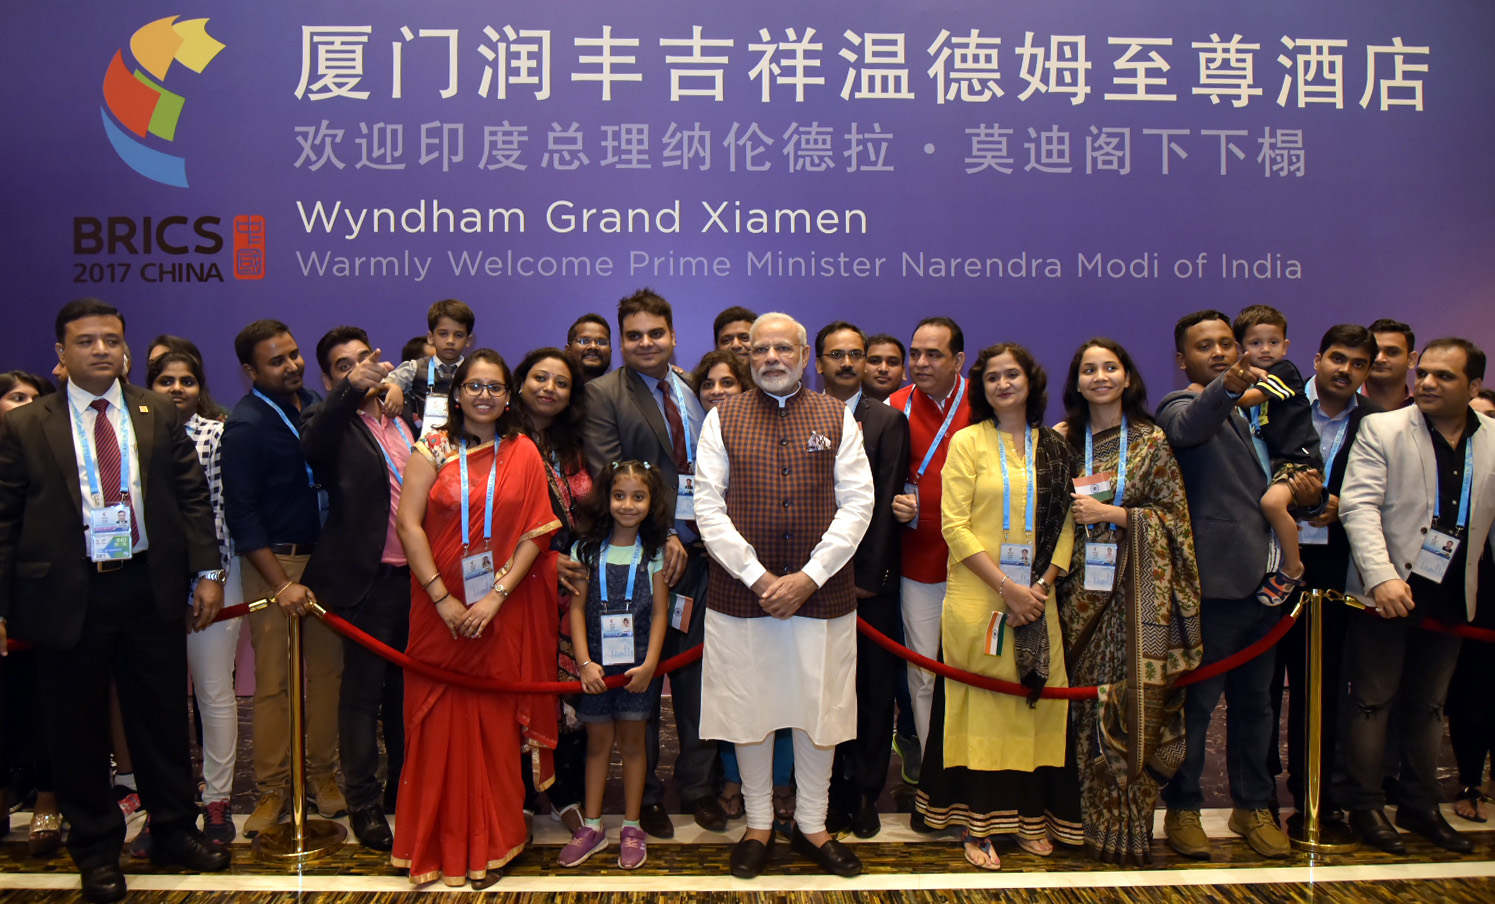 Indian Prime Minister Narendra Modi being welcomed by the Indian community in Xiamen on his arrival to attend the 9th BRICS Summit. Photos courtesy: Press Information bureau, India